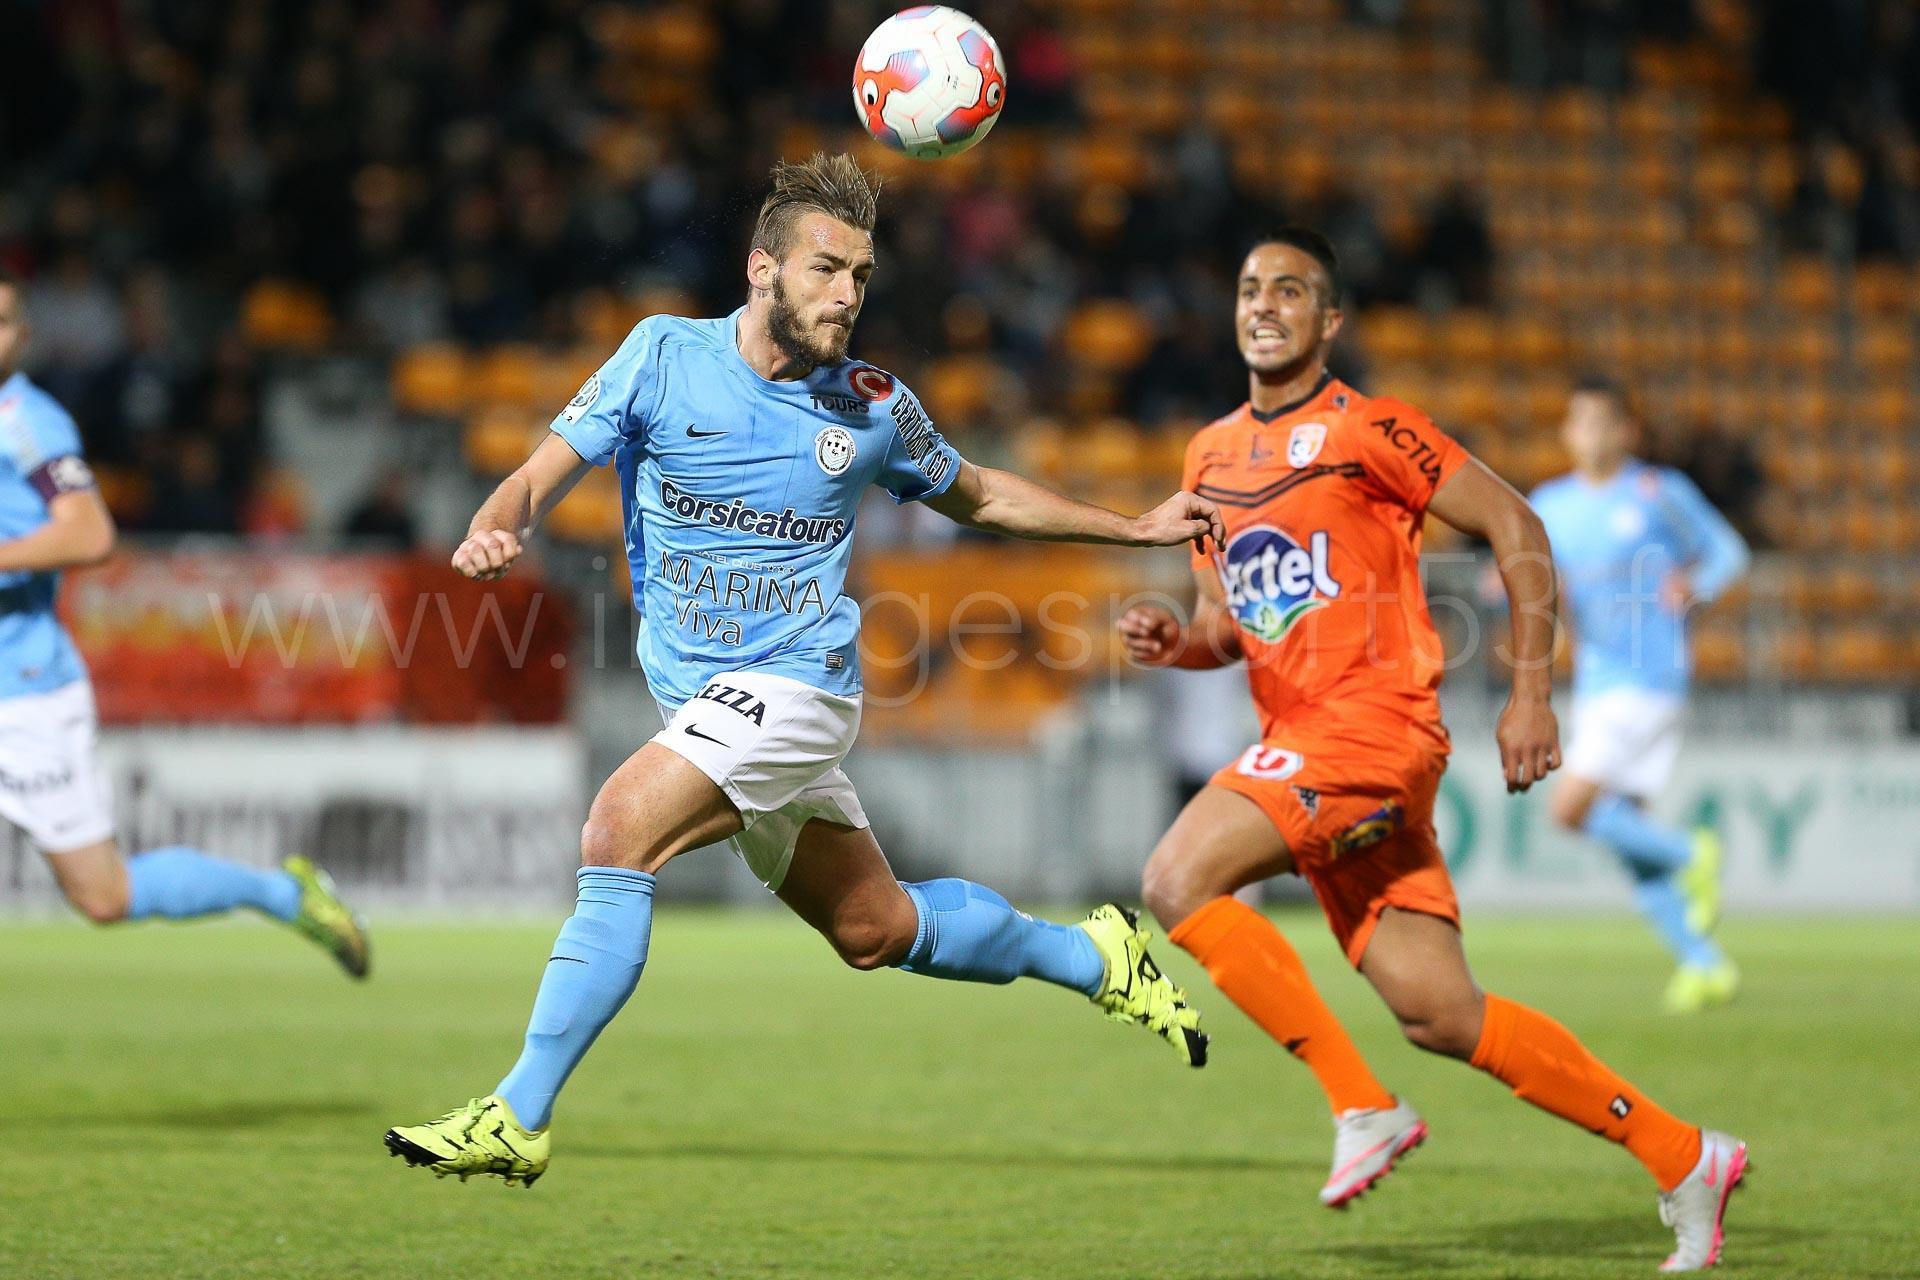 NG-Ligue2-1516-J12-Laval-Tours_8